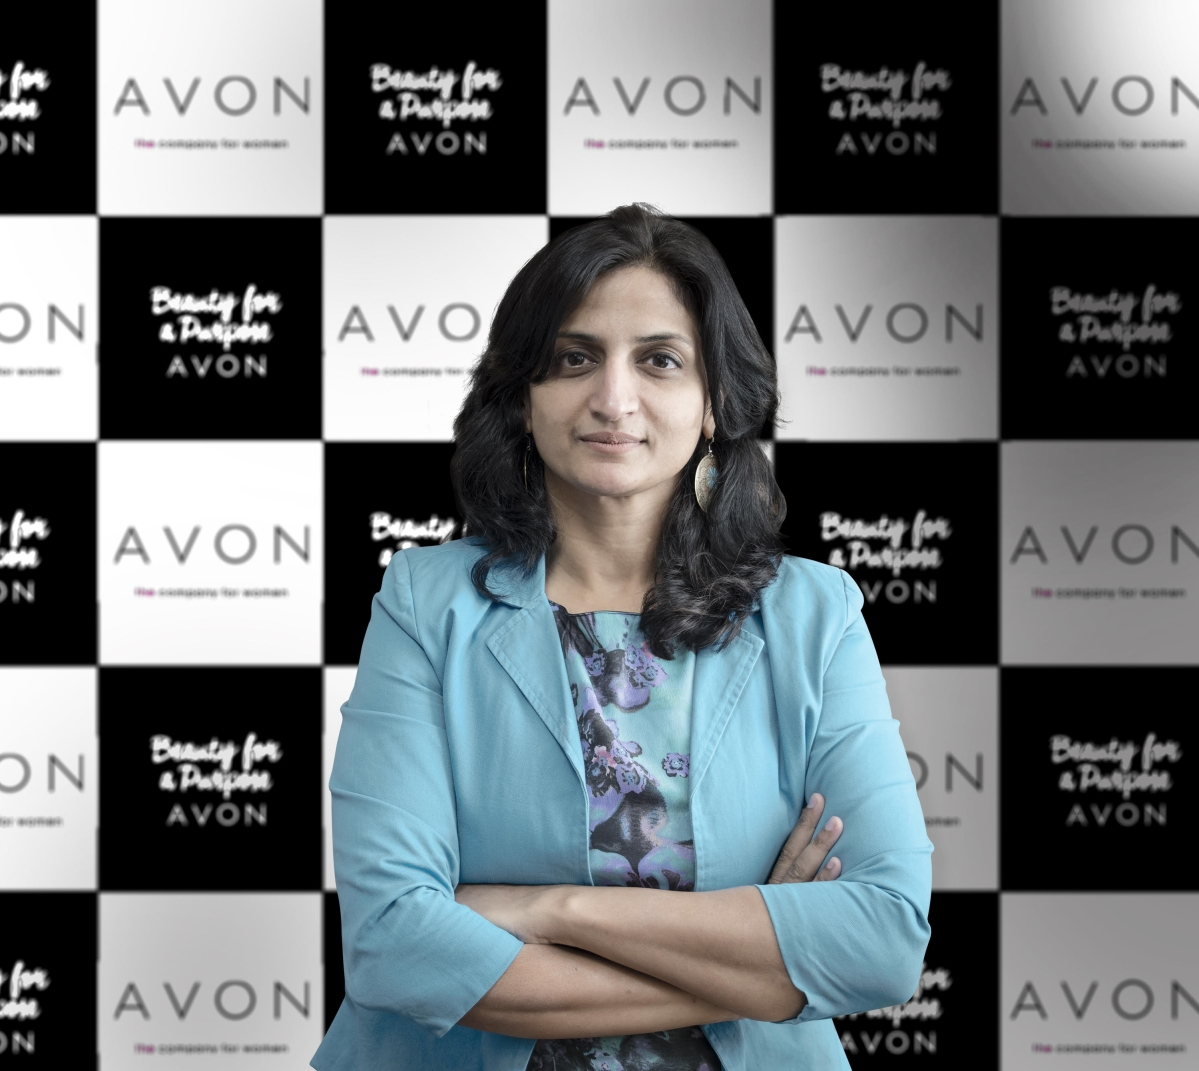 Pulp Strategy wins the digital mandate for Avon